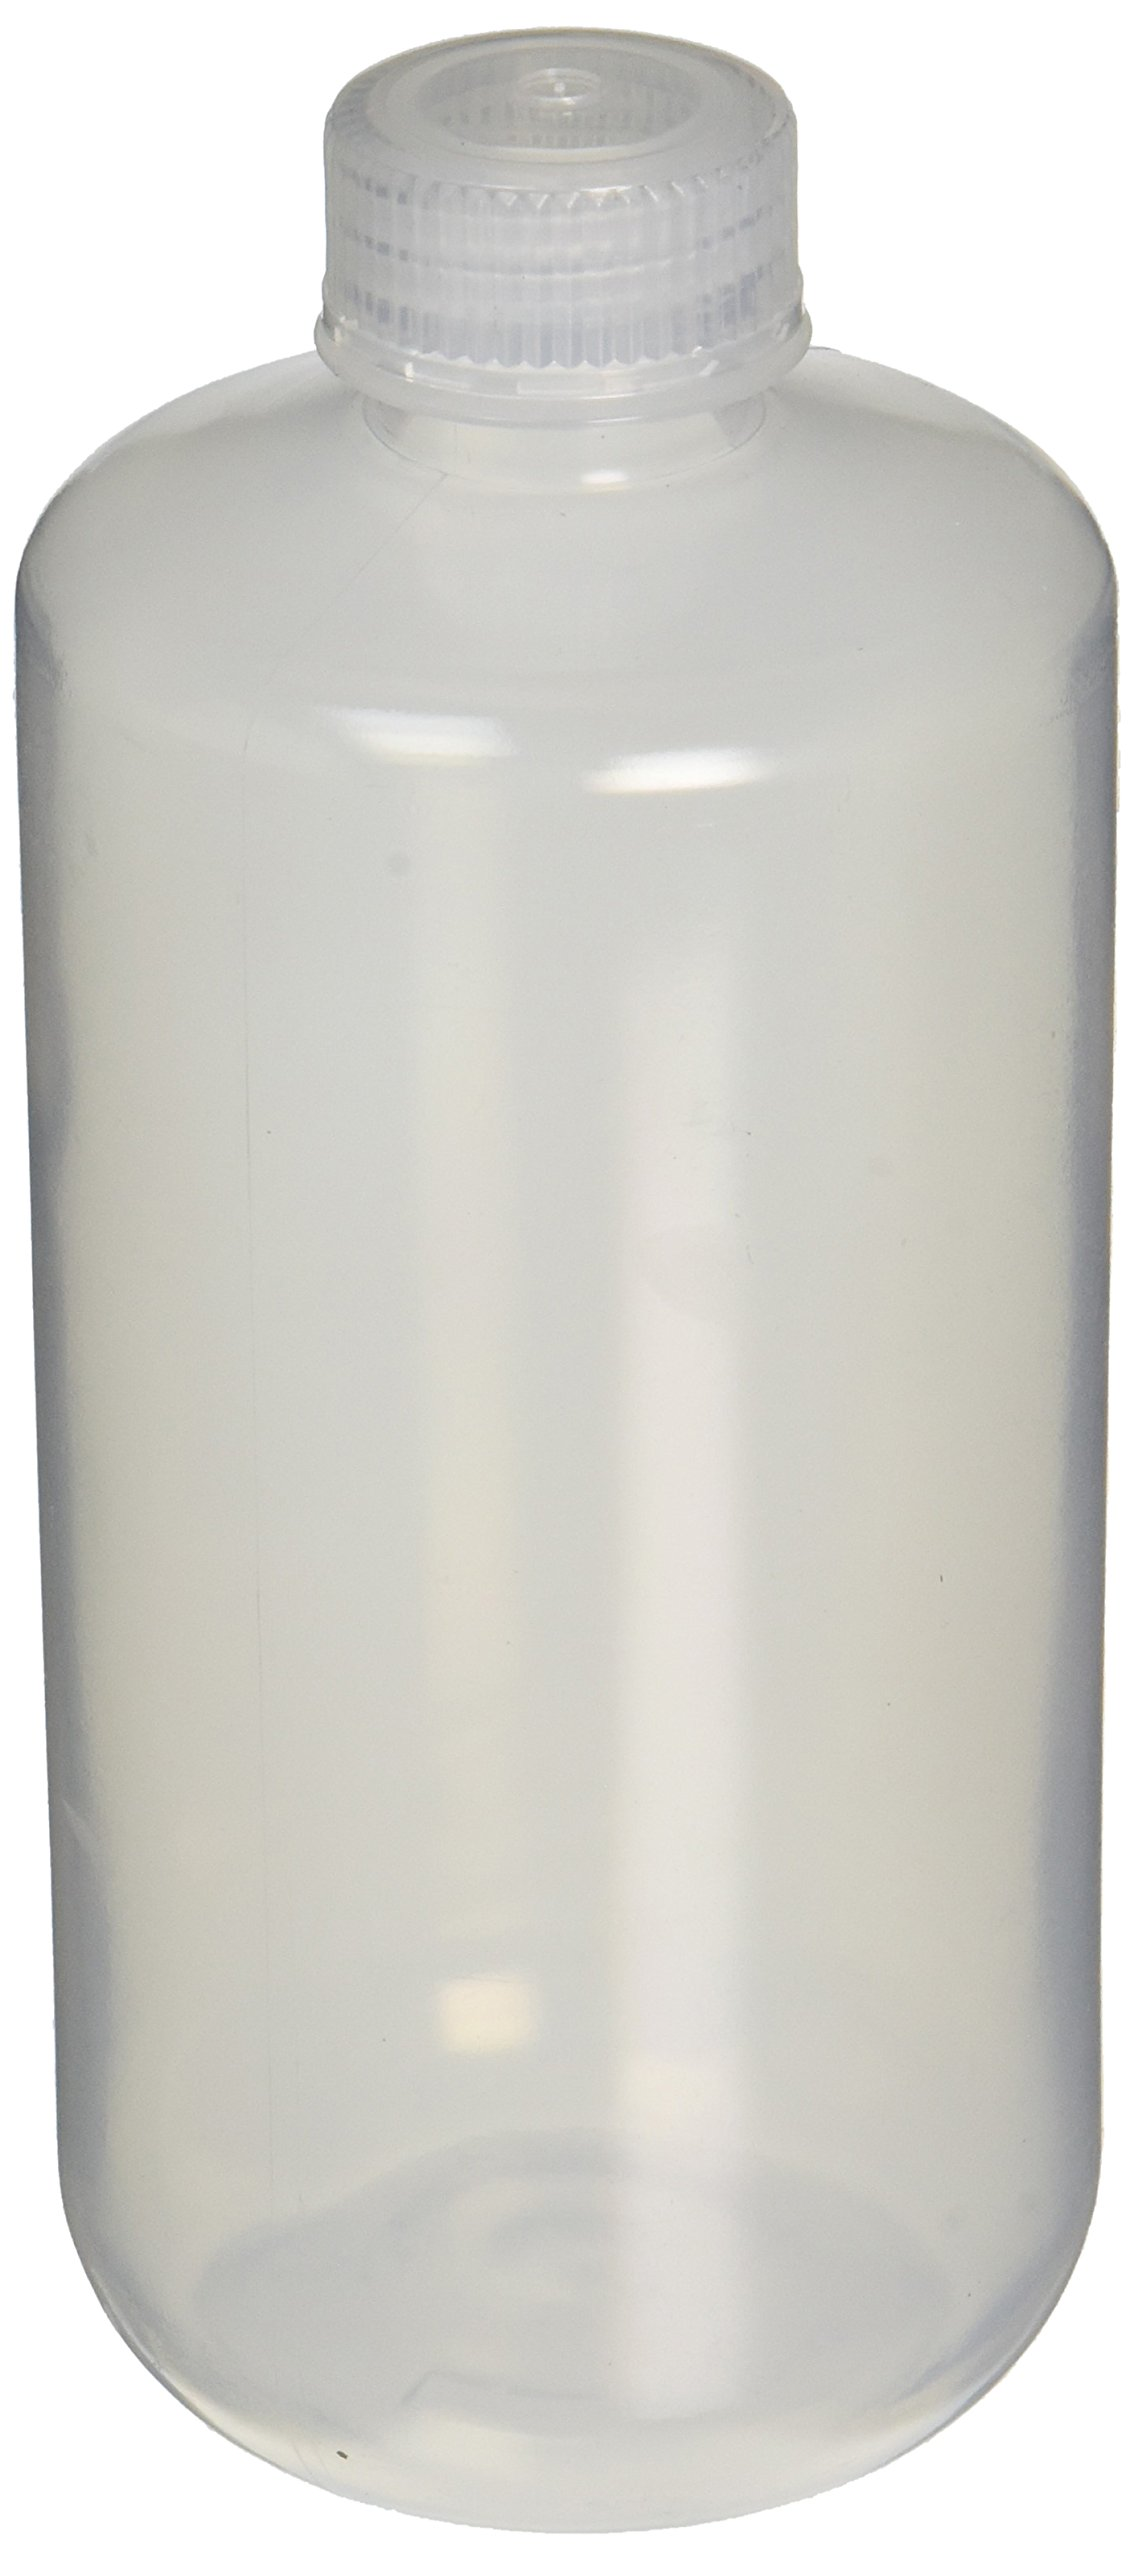 United Scientific 33304 Polypropylene Narrow Mouth Reagent Bottles, 500ml Capacity (Pack of 12)